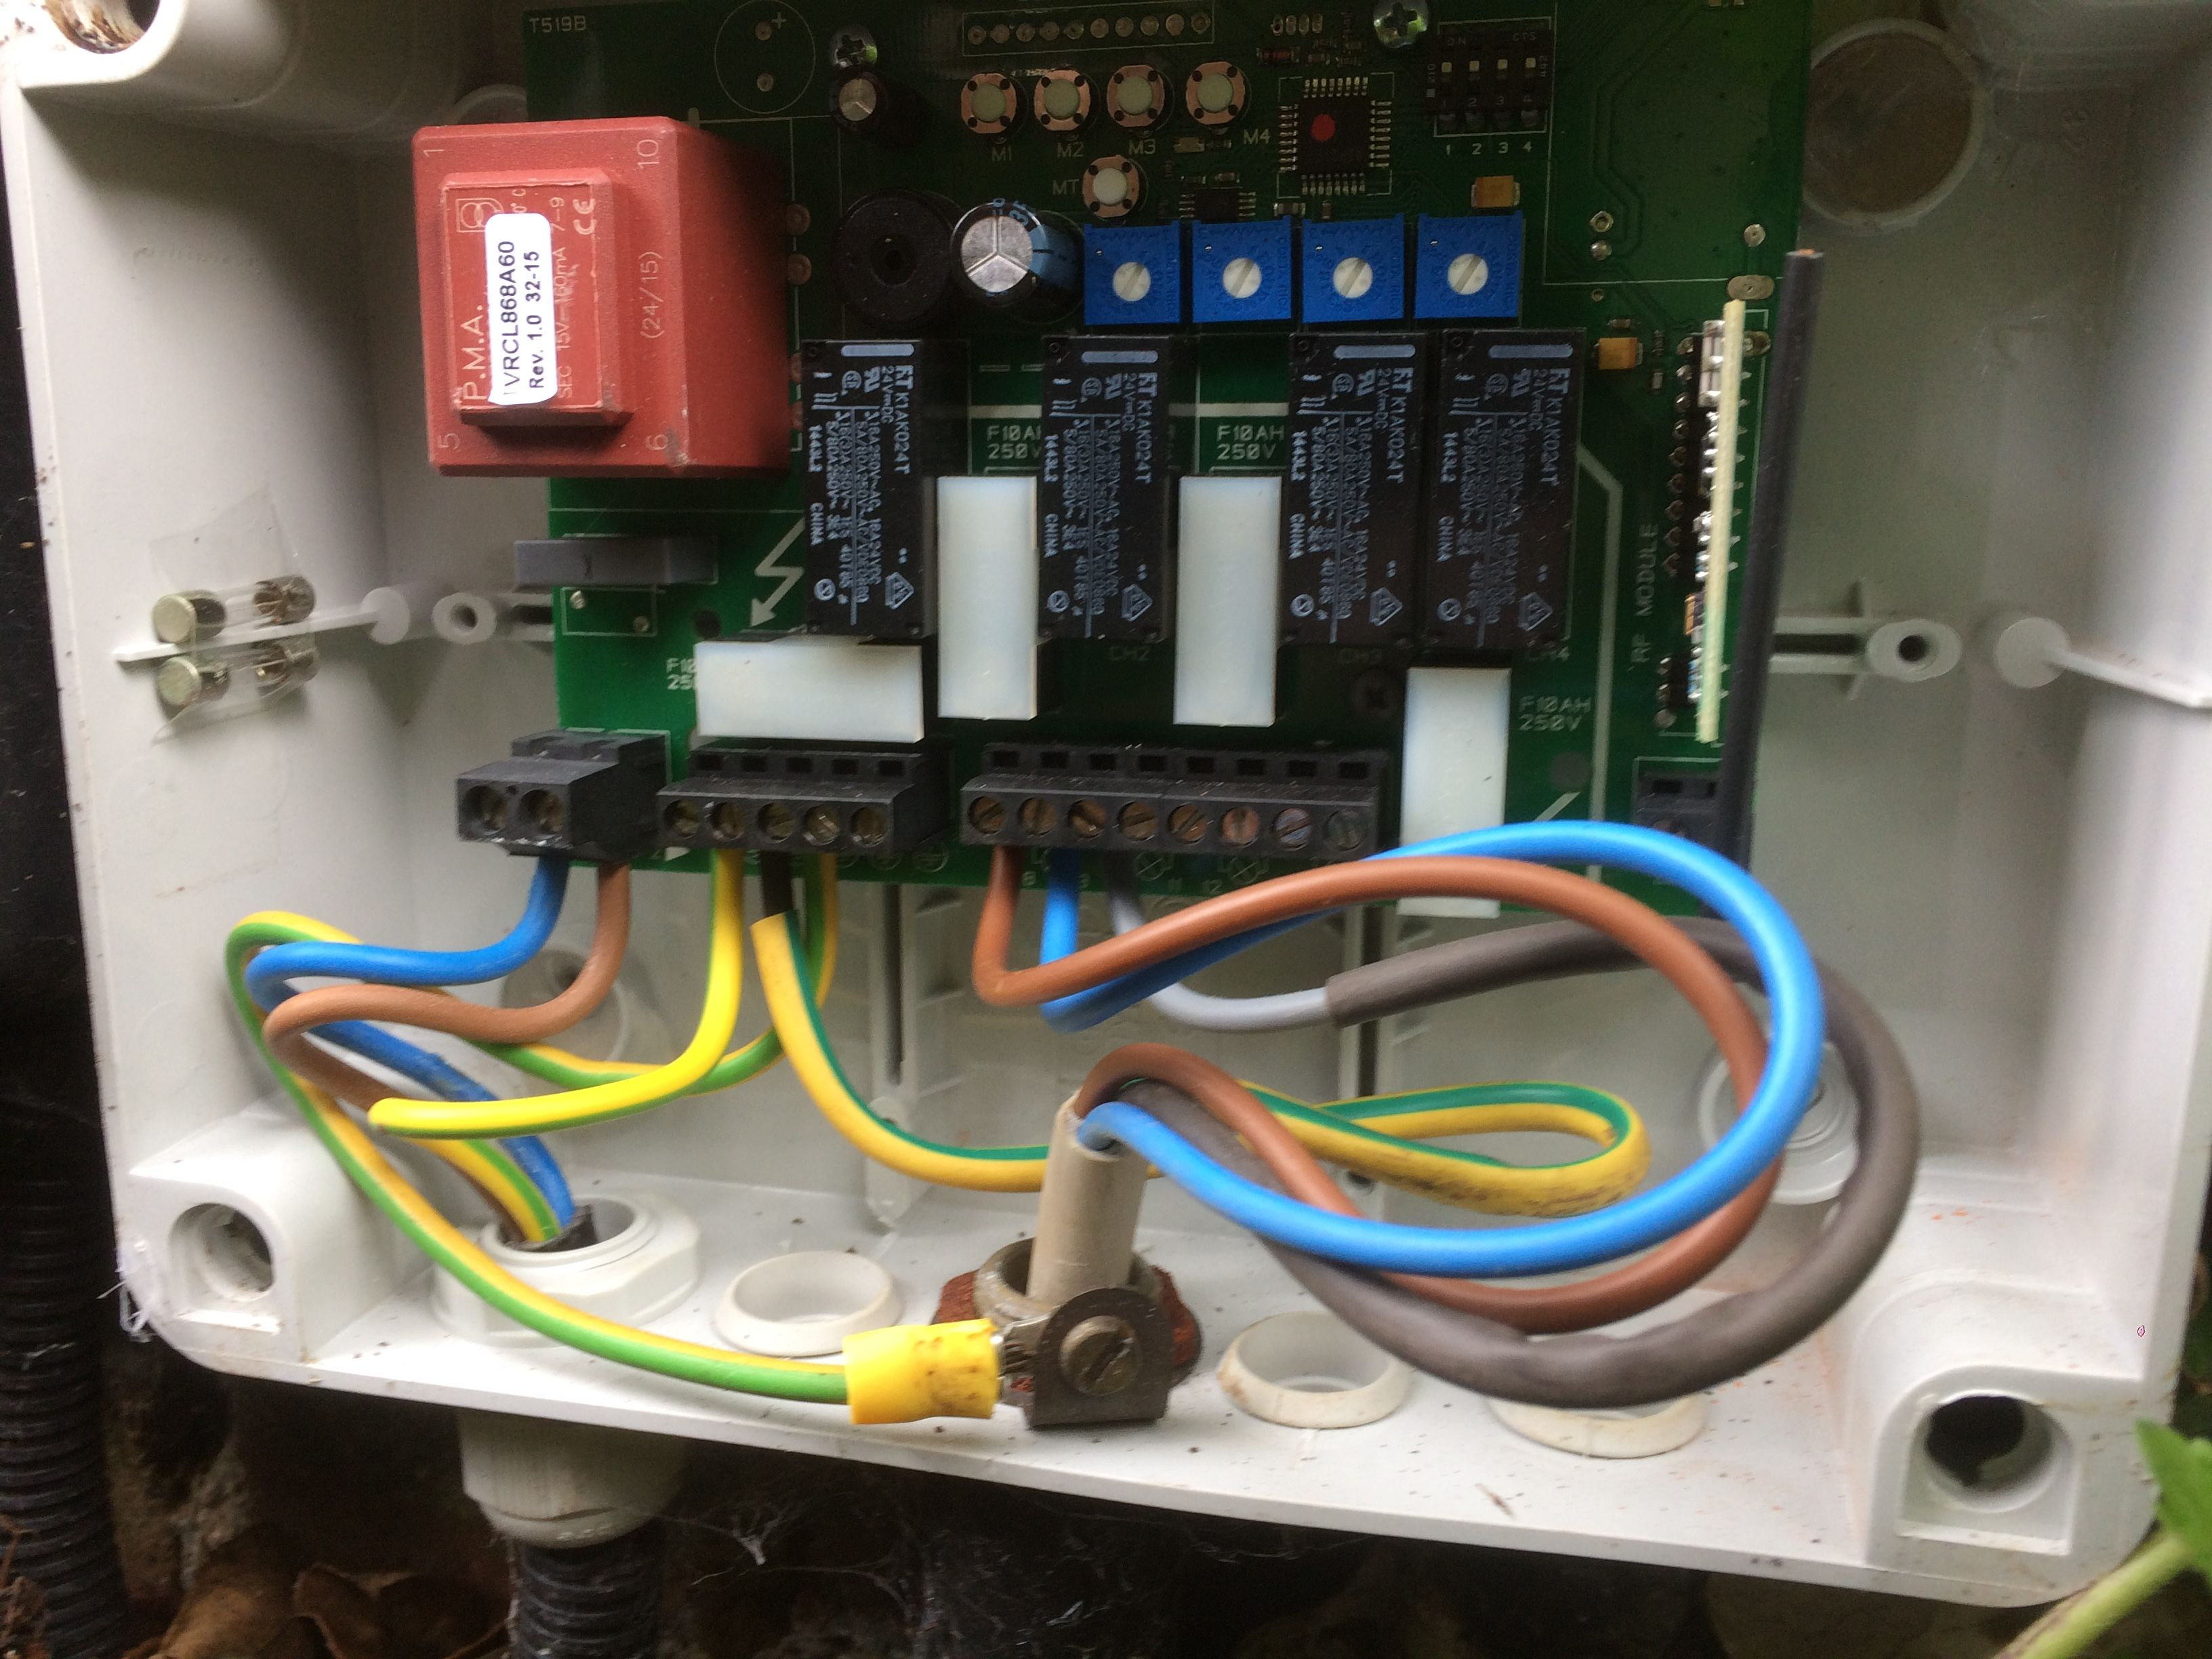 Fault Finding Diagnosis and Repairs at a Garden Lighting Control relay box